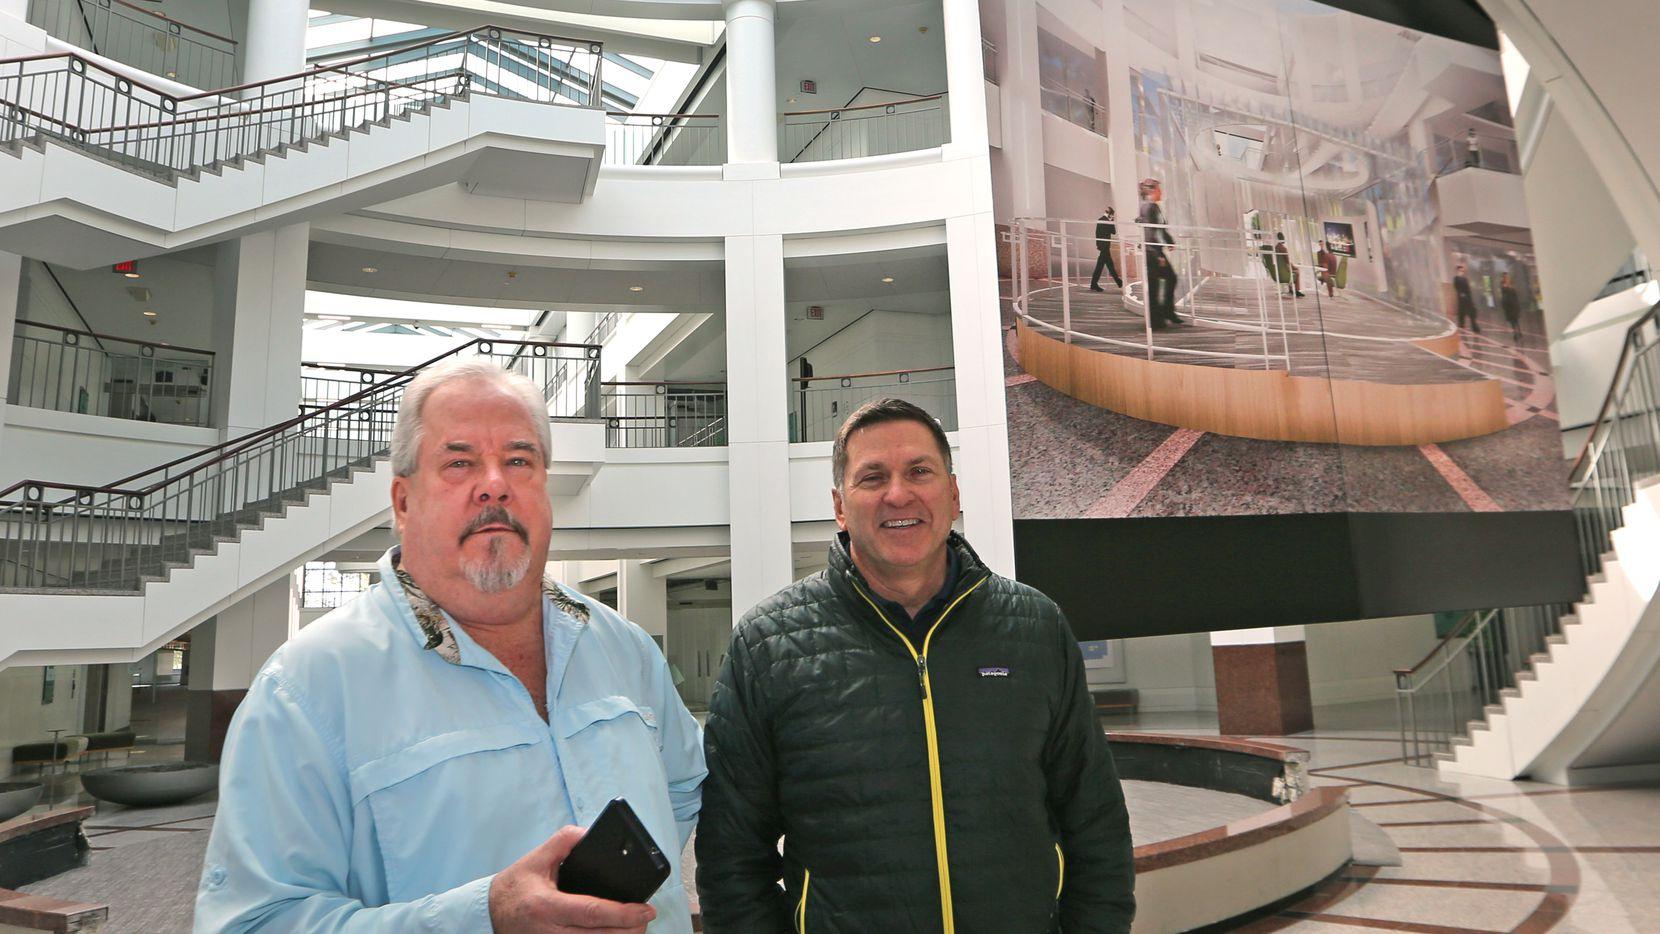 Developer Sam Ware (left) and COO Jeff Blakeley survey the newly-renovated space at the Campus at Legacy West in Plano.